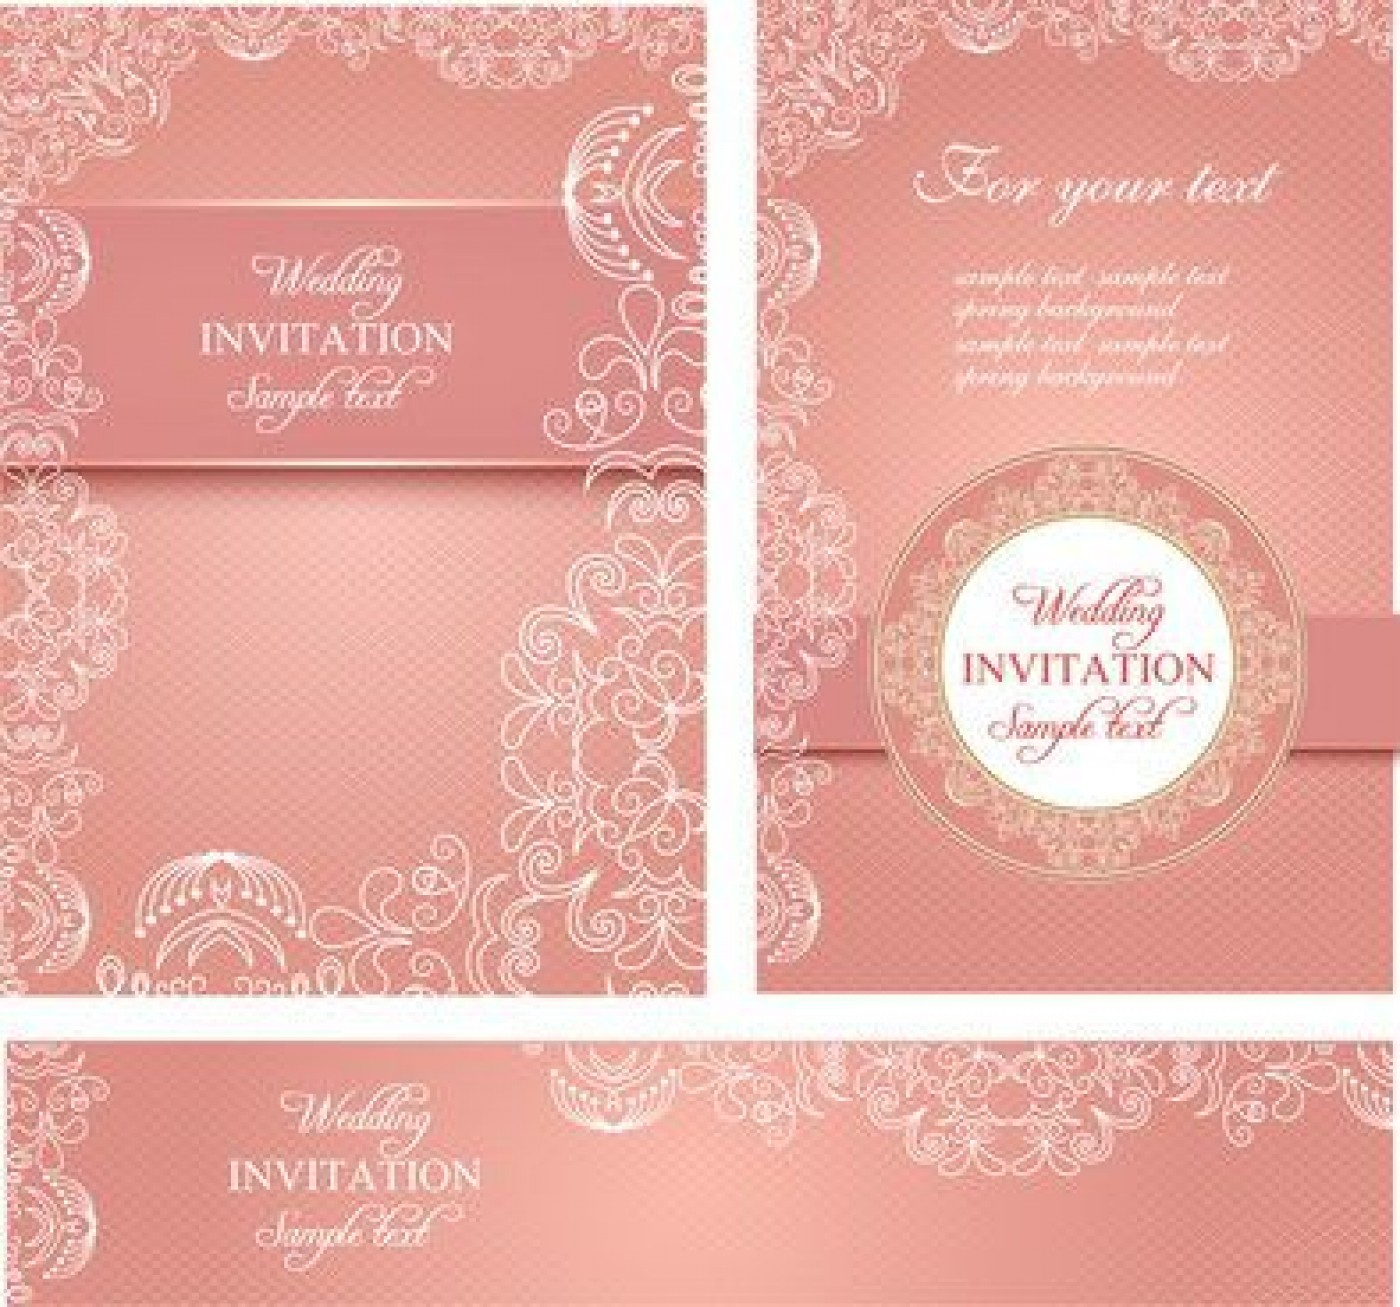 008 Unbelievable Free Download Marriage Invitation Template Highest Clarity  Card Design Psd After Effect1400